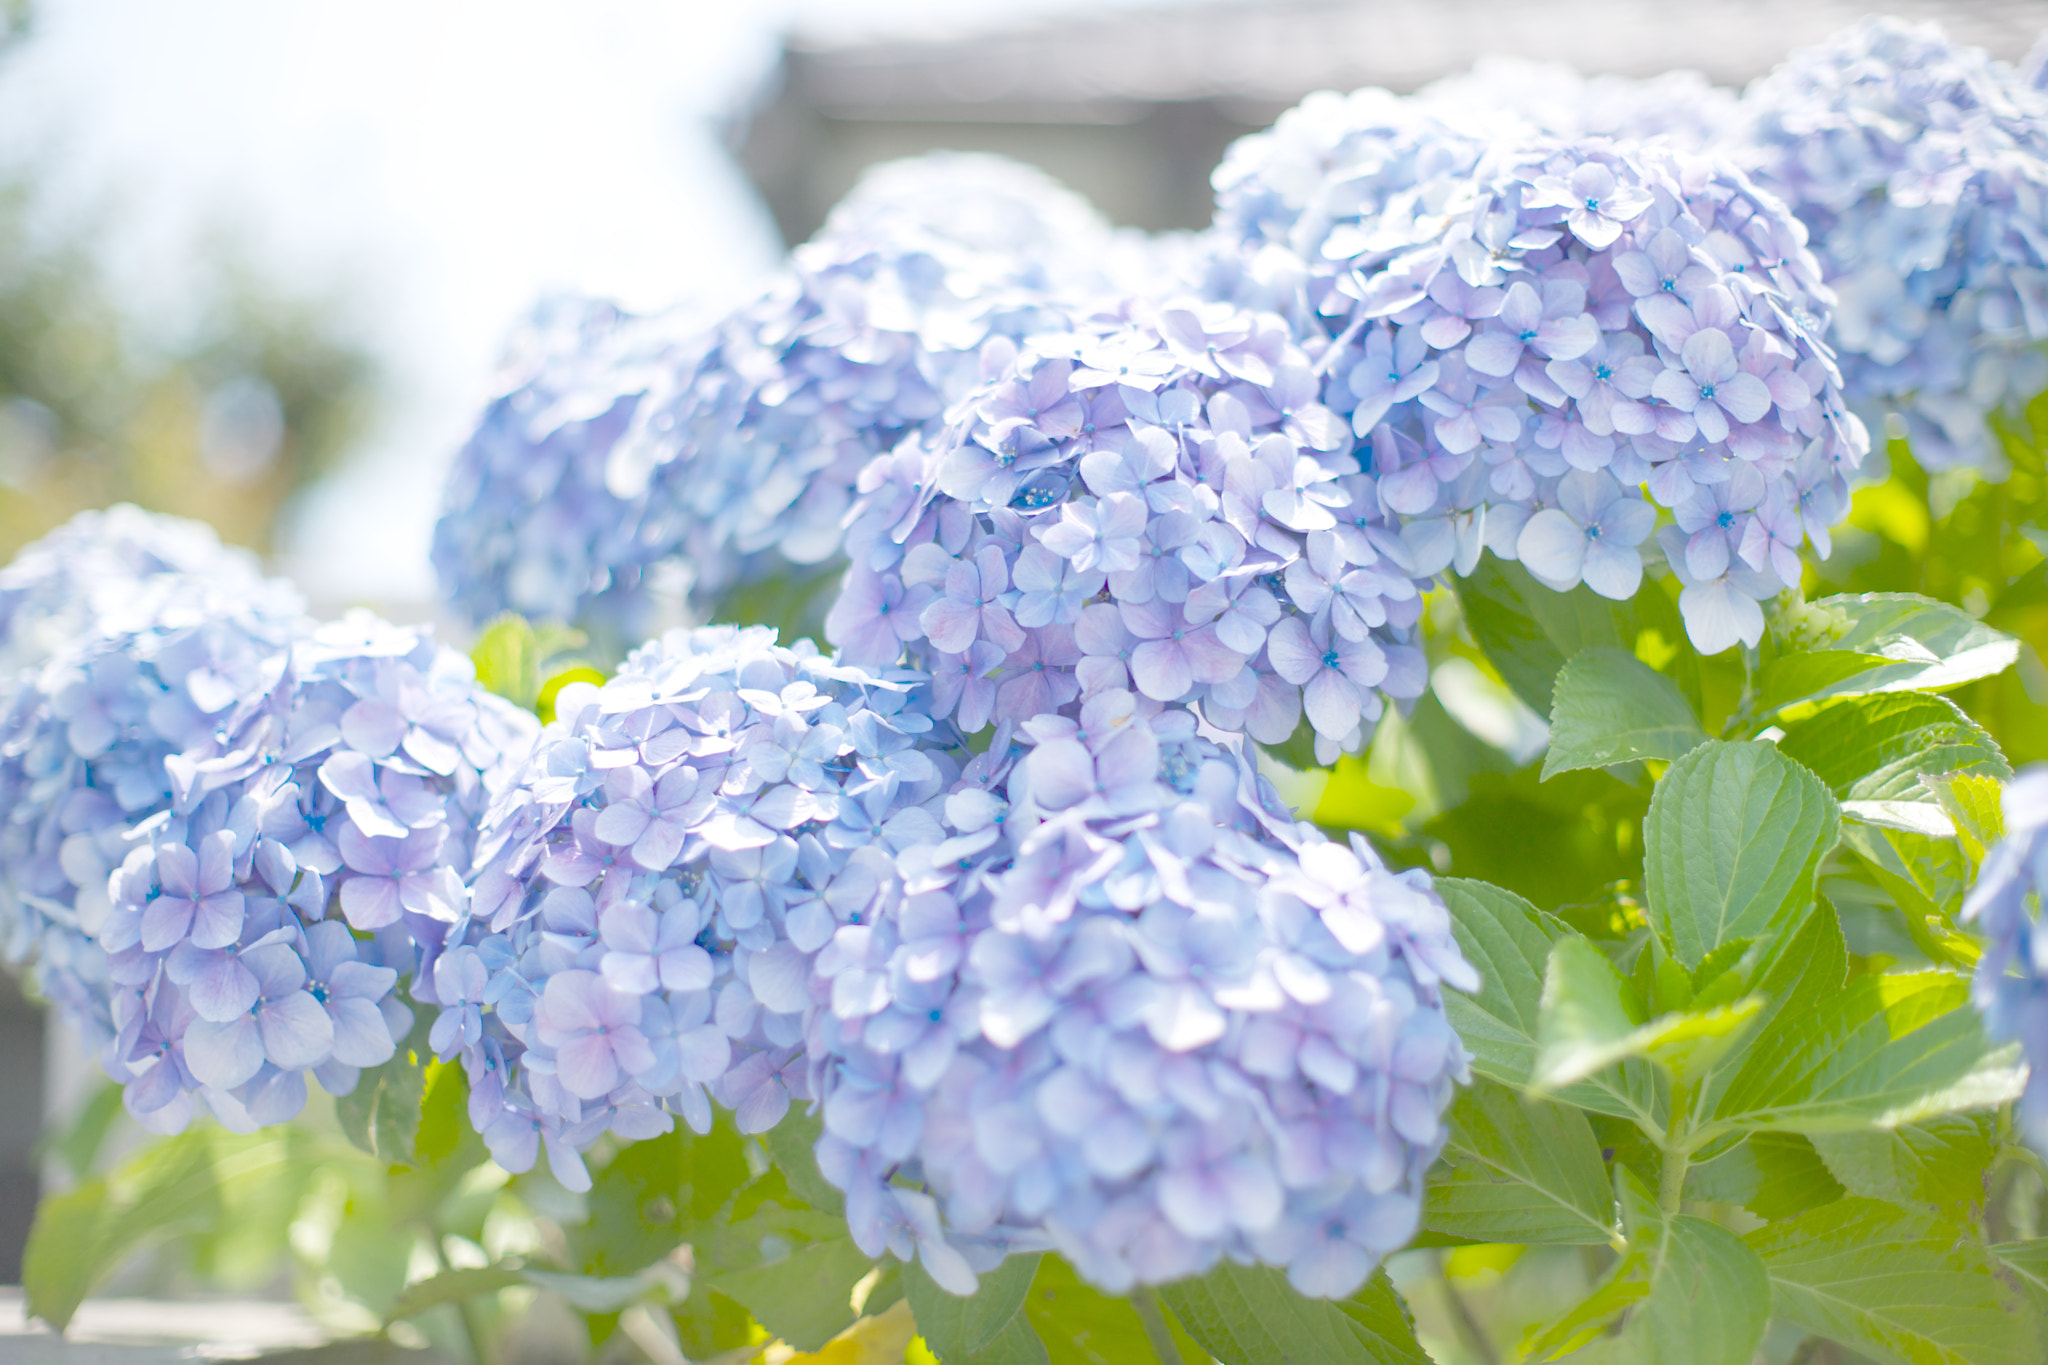 Photograph A lot of hydrangeas. by marbee .info on 500px